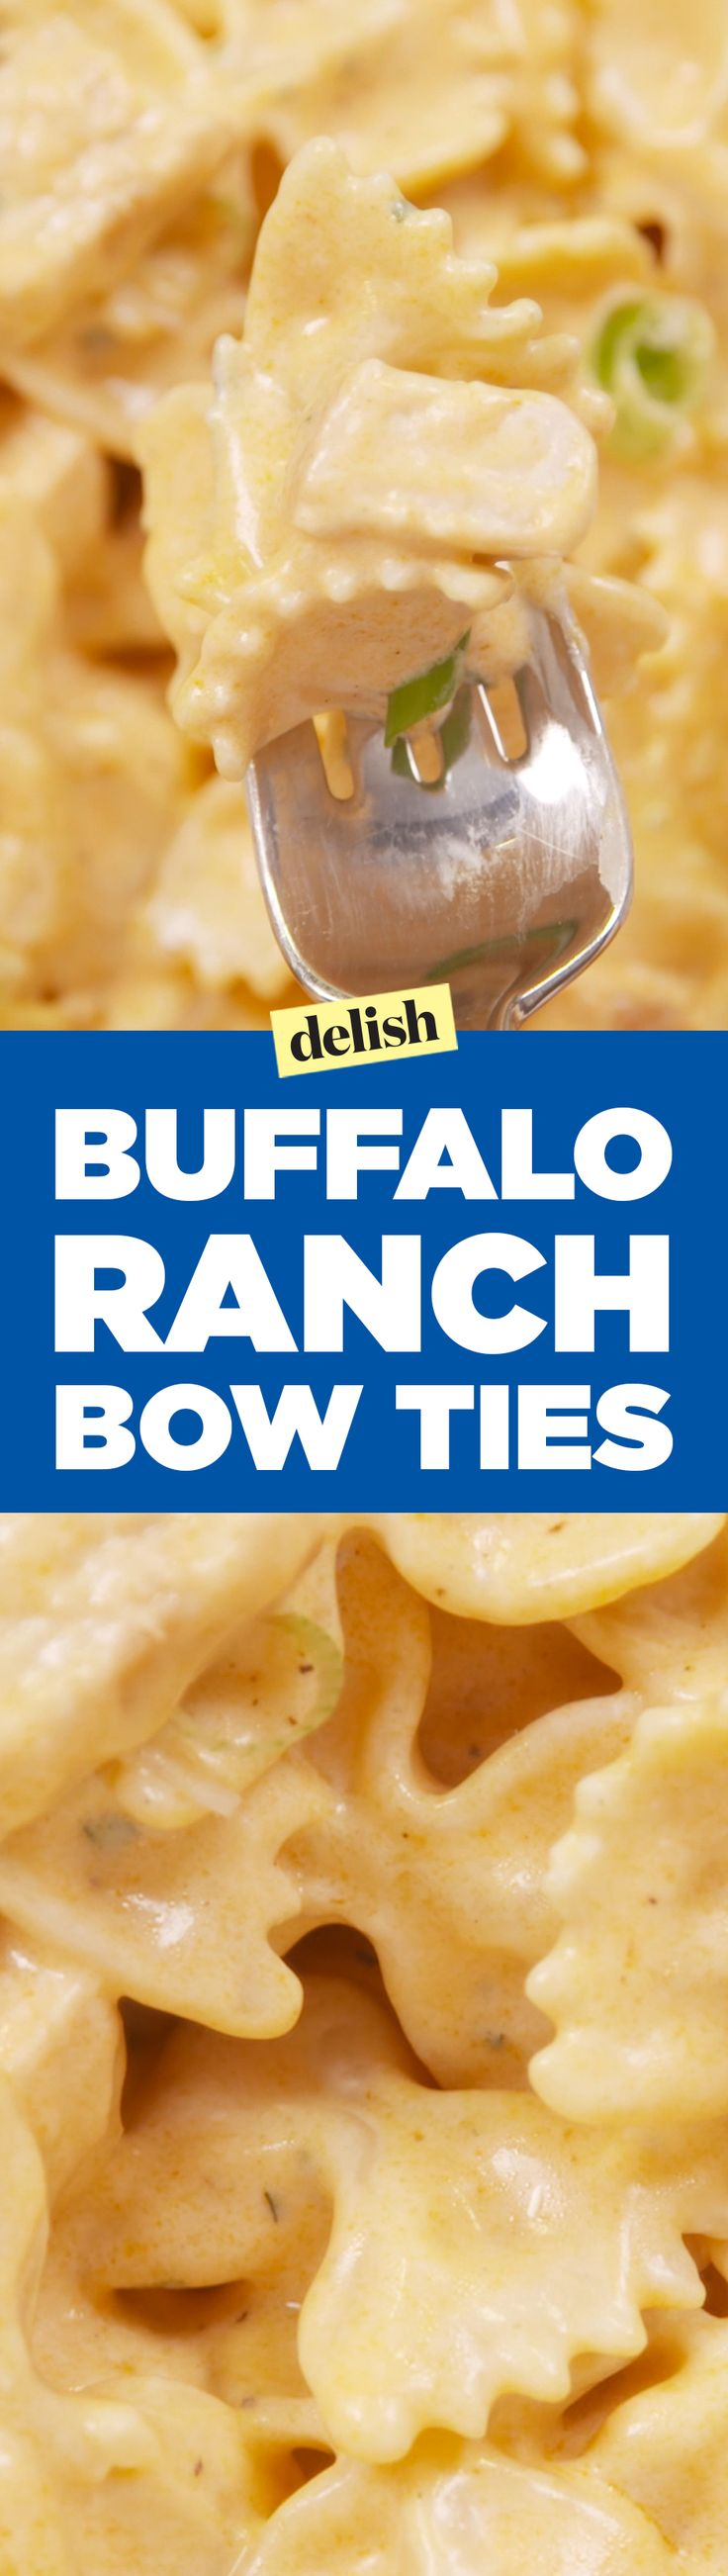 Buffalo ranch bow ties are going to take your buffalo-ranch obsession to the next level. Get the recipe on Delish.com.